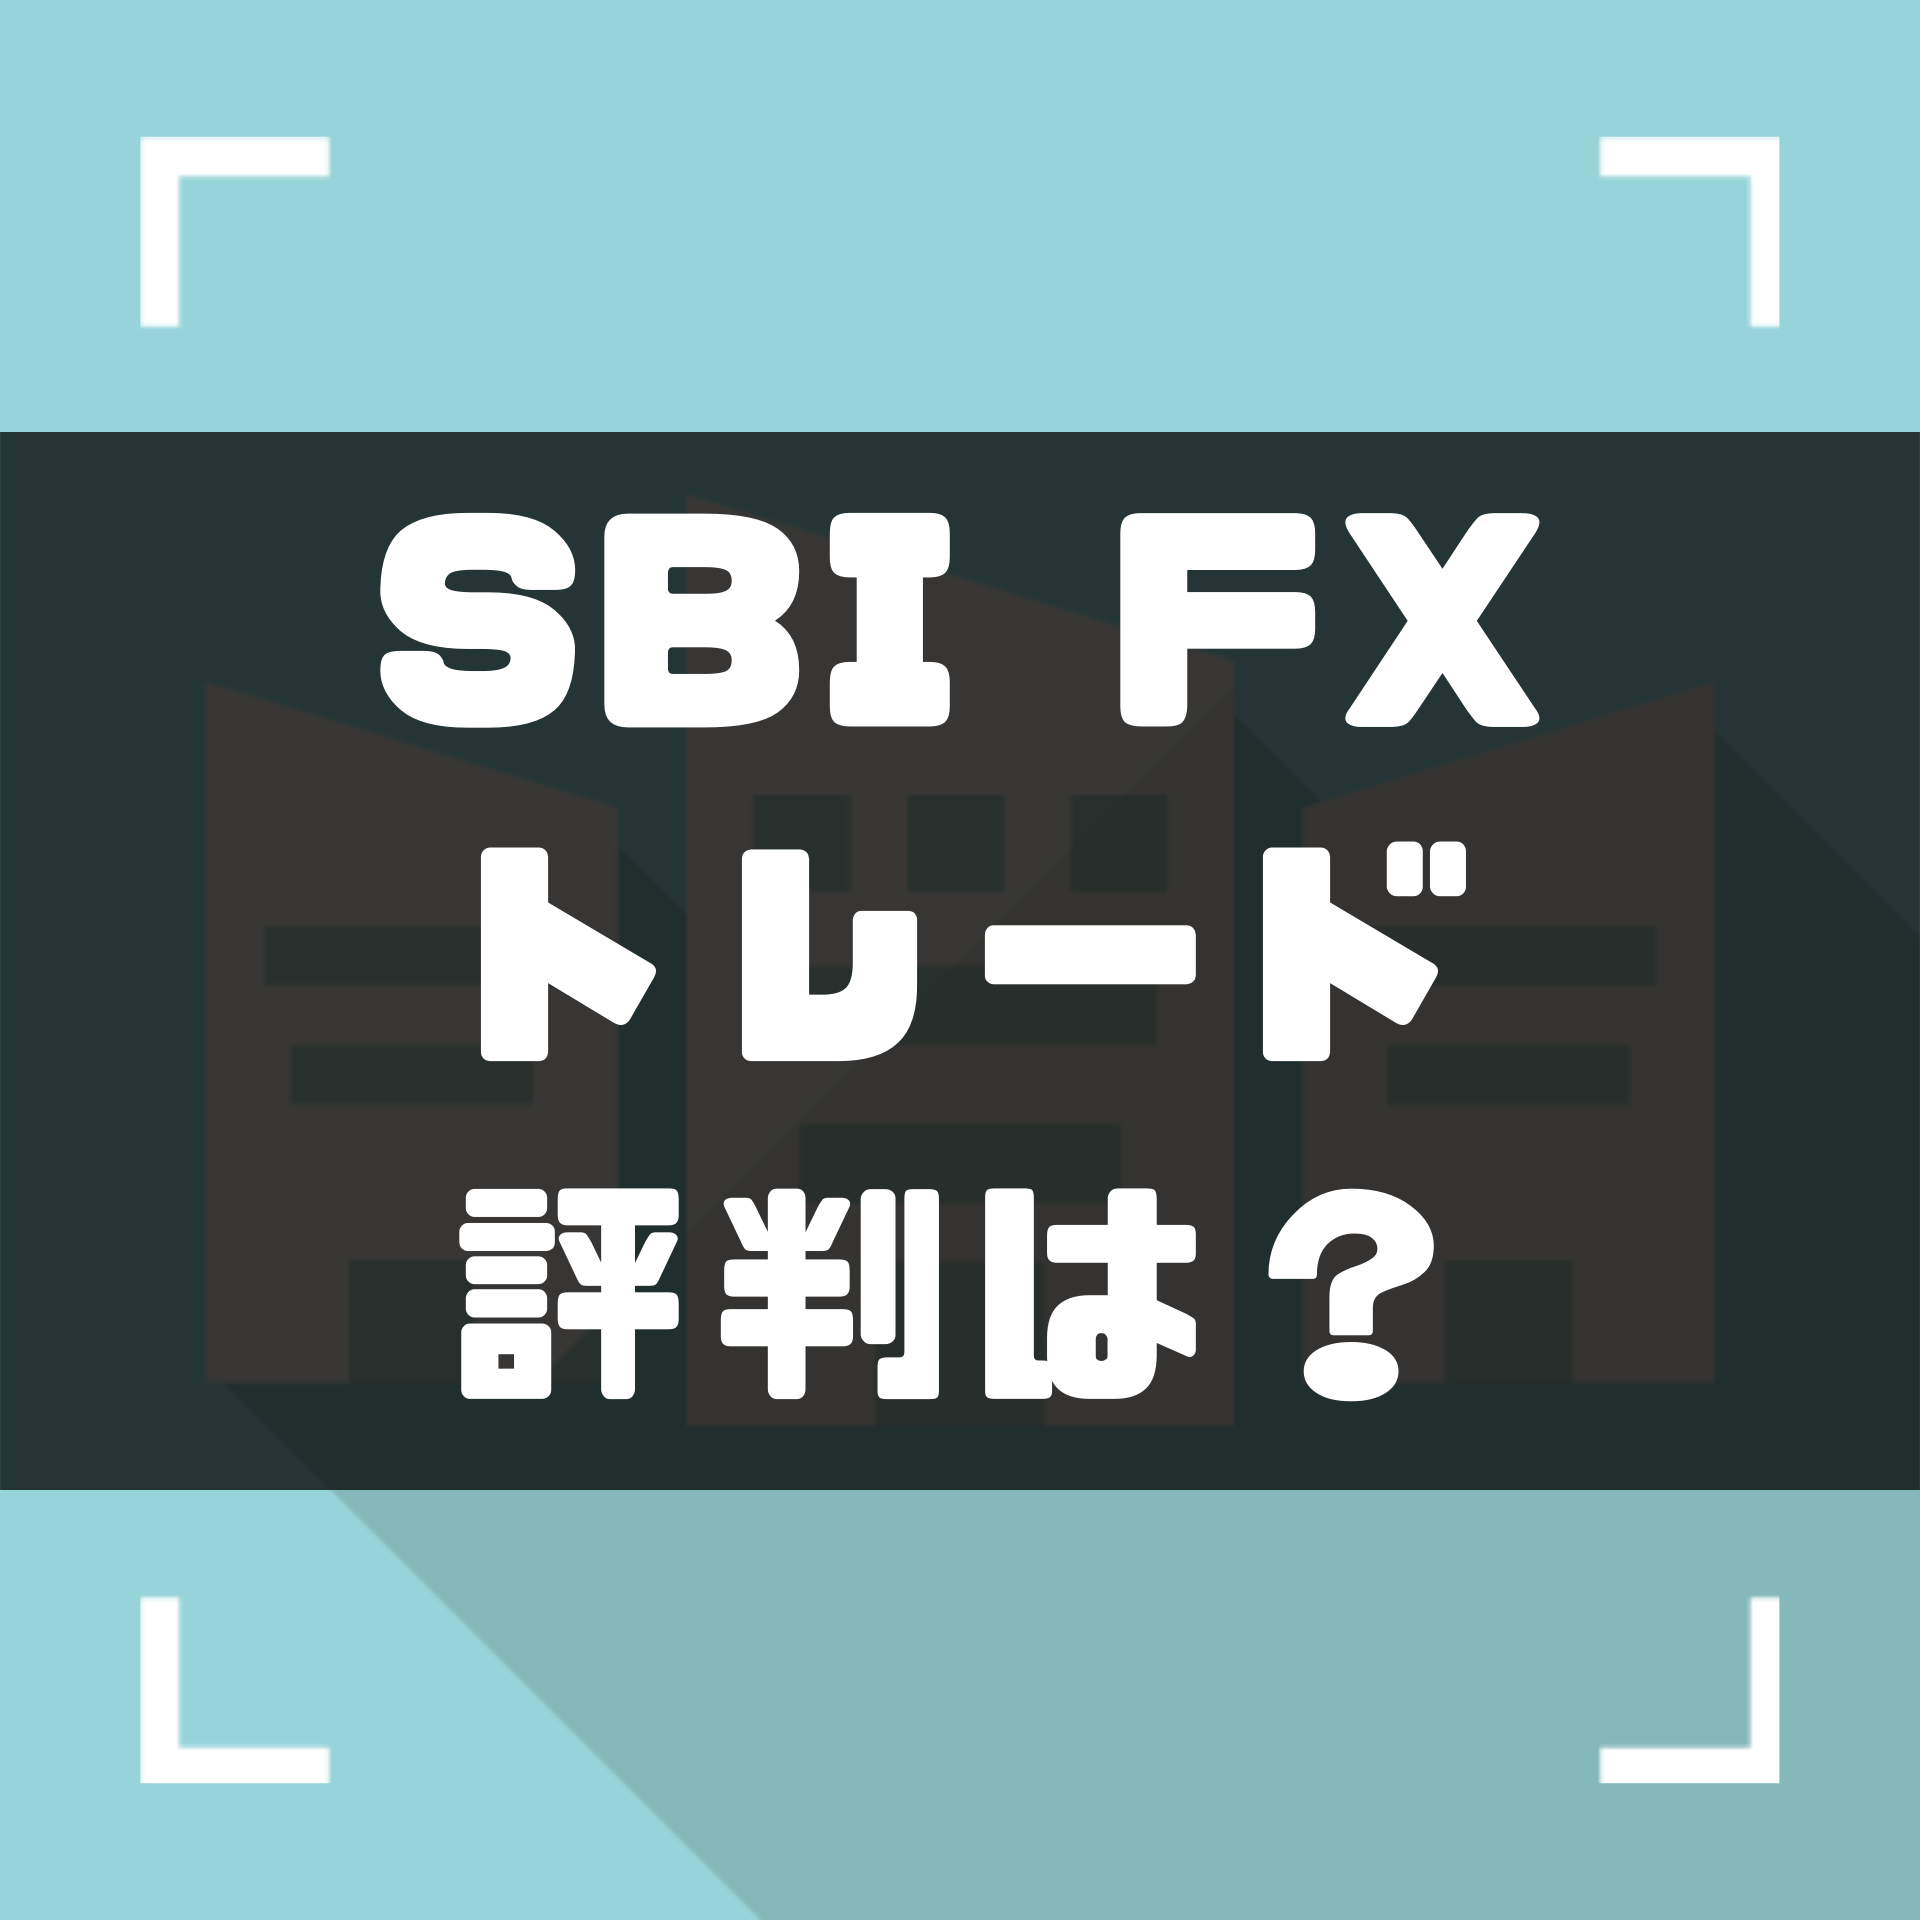 SBIFX_サムネイル